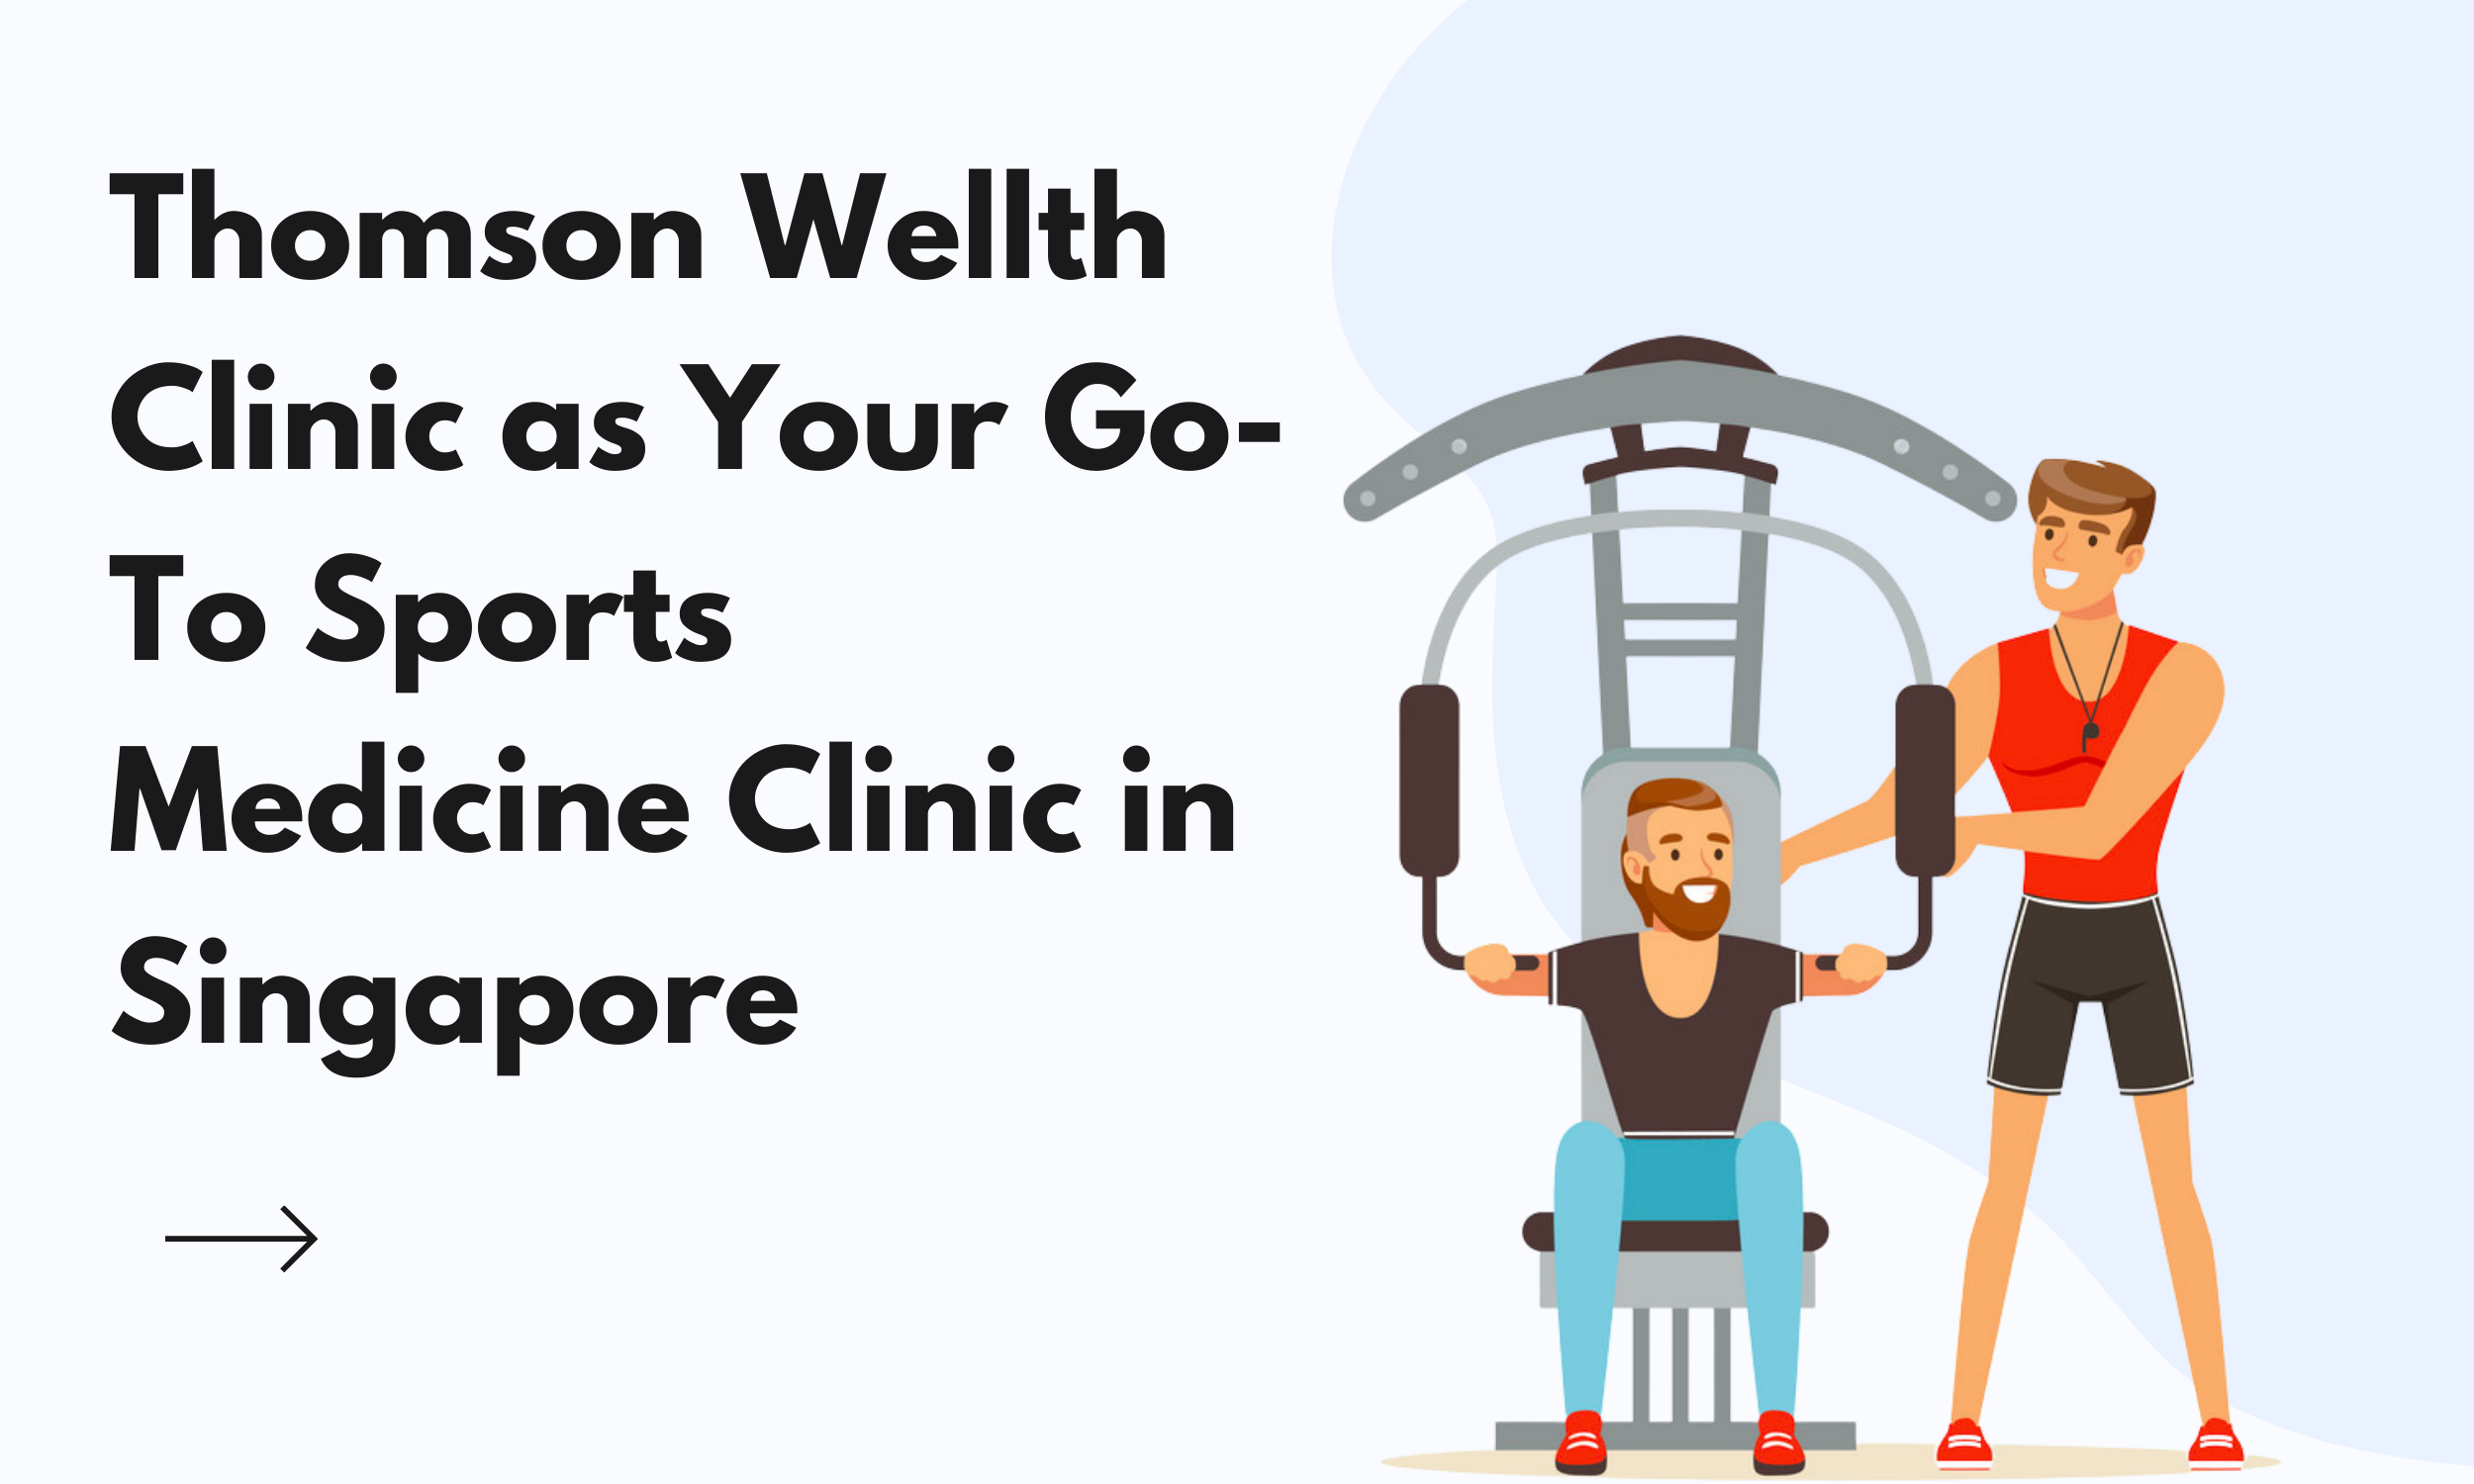 Thomson-Wellth-Clinic-as-Your-Go-To-Sports-Medicine-Clinic-in-Singapore